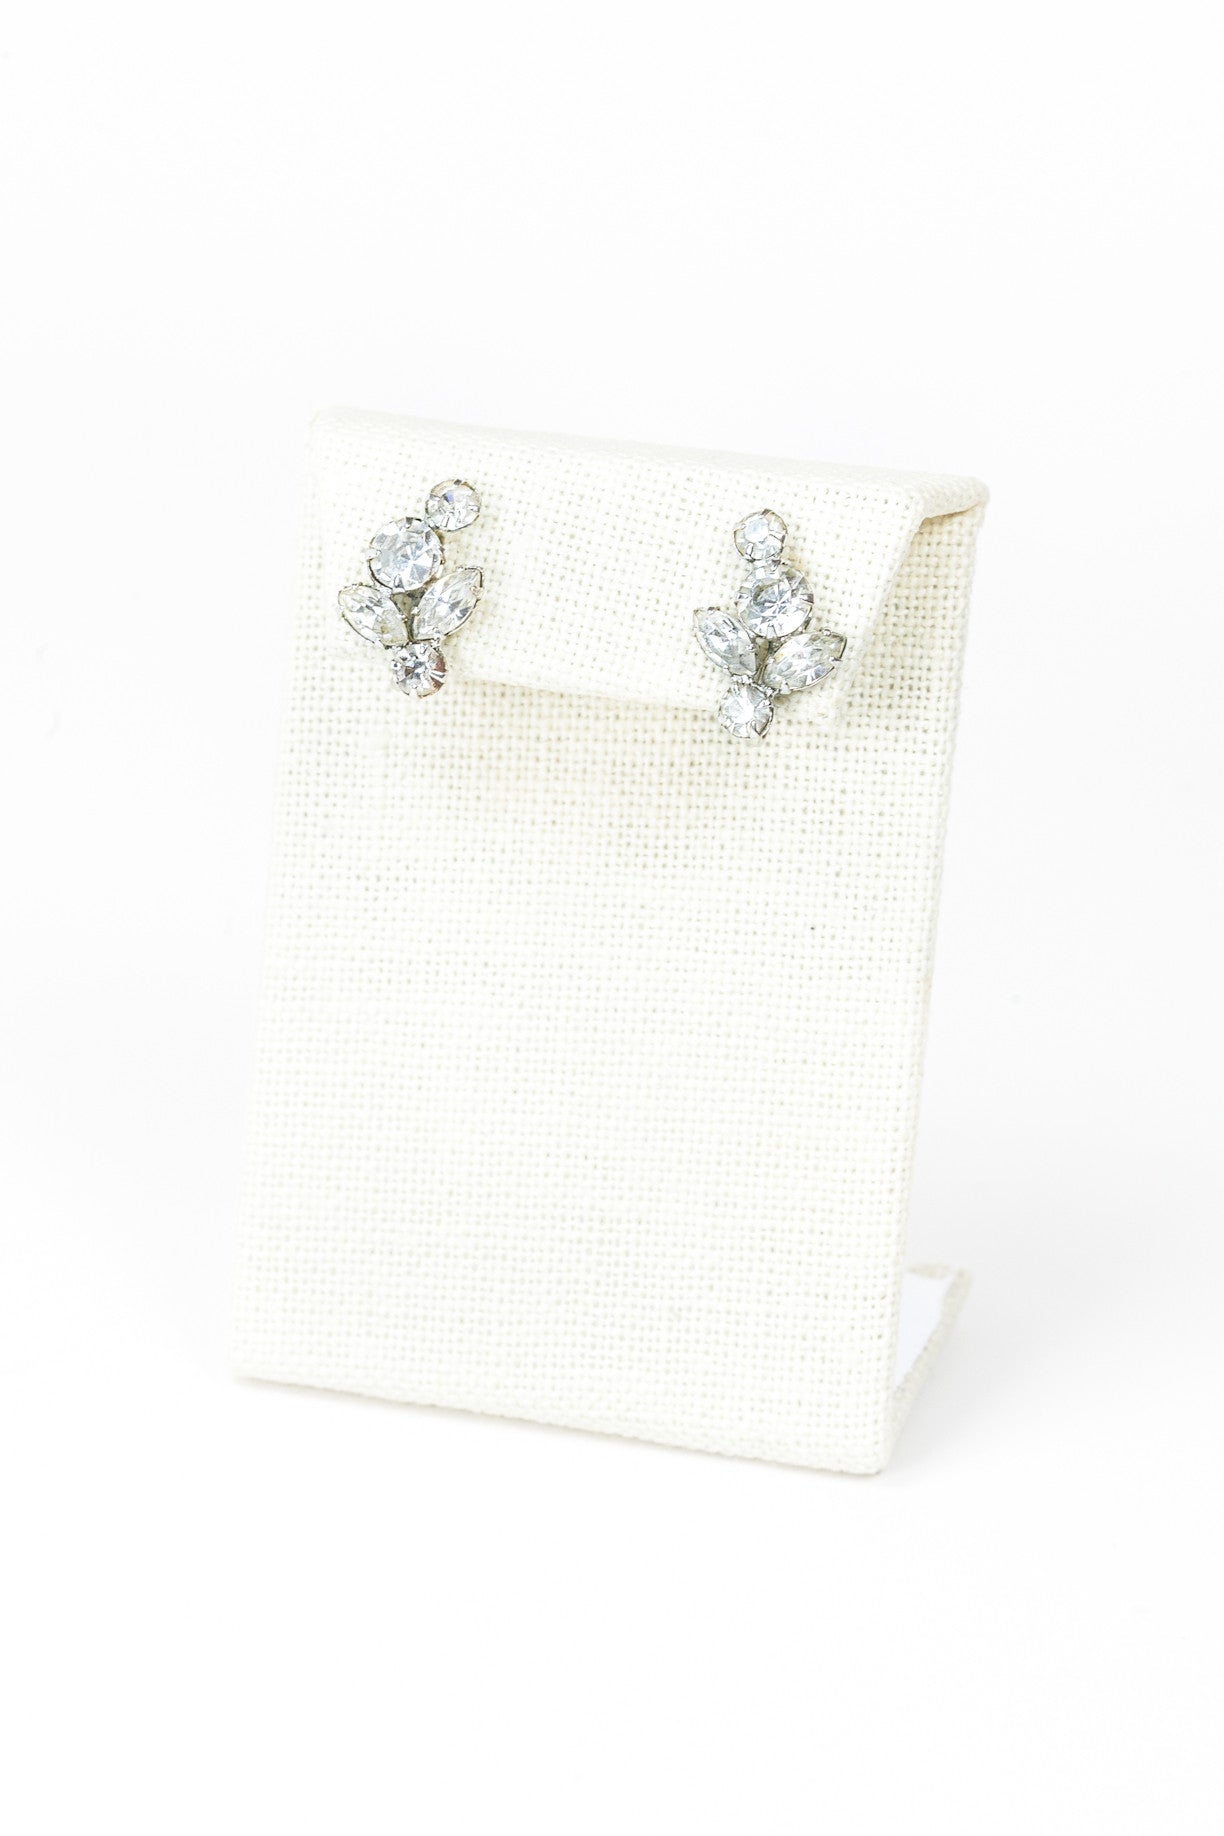 60's__Vintage__Dainty Rhinestone Leaf Earrings